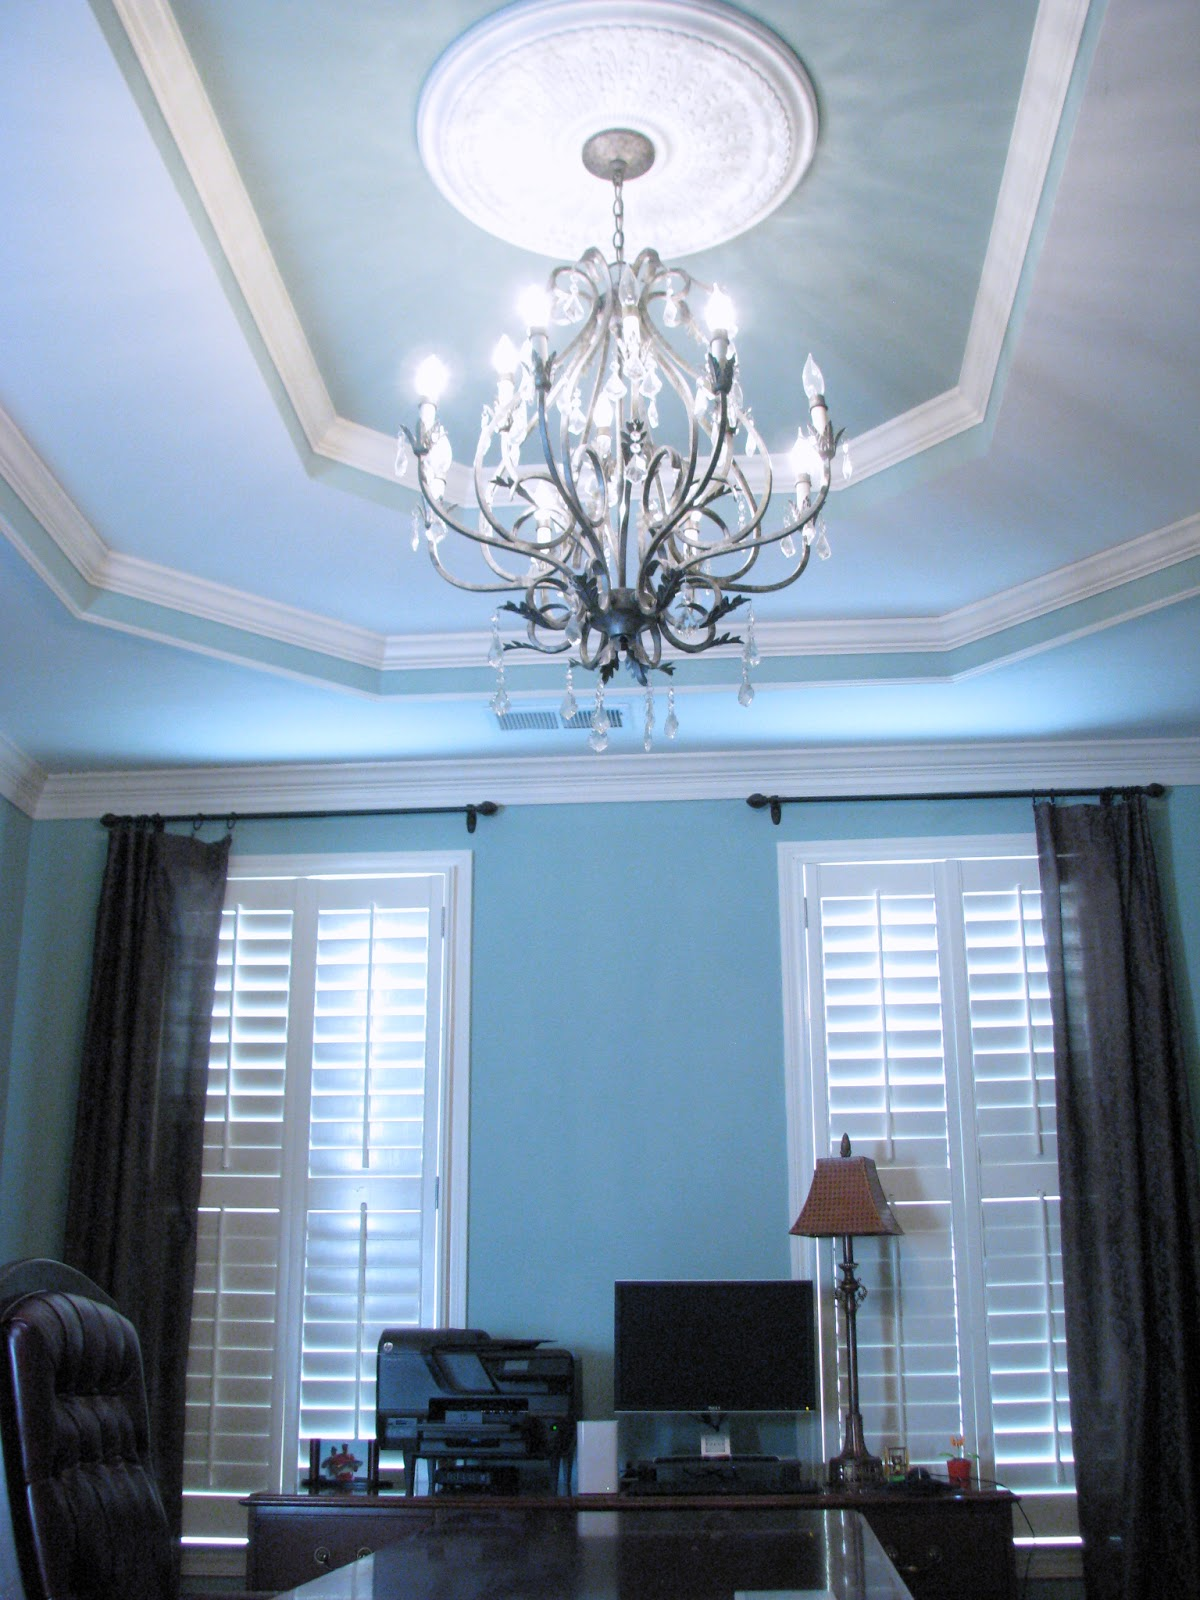 Office with chandelier, trey ceiling, and ceiling medallion